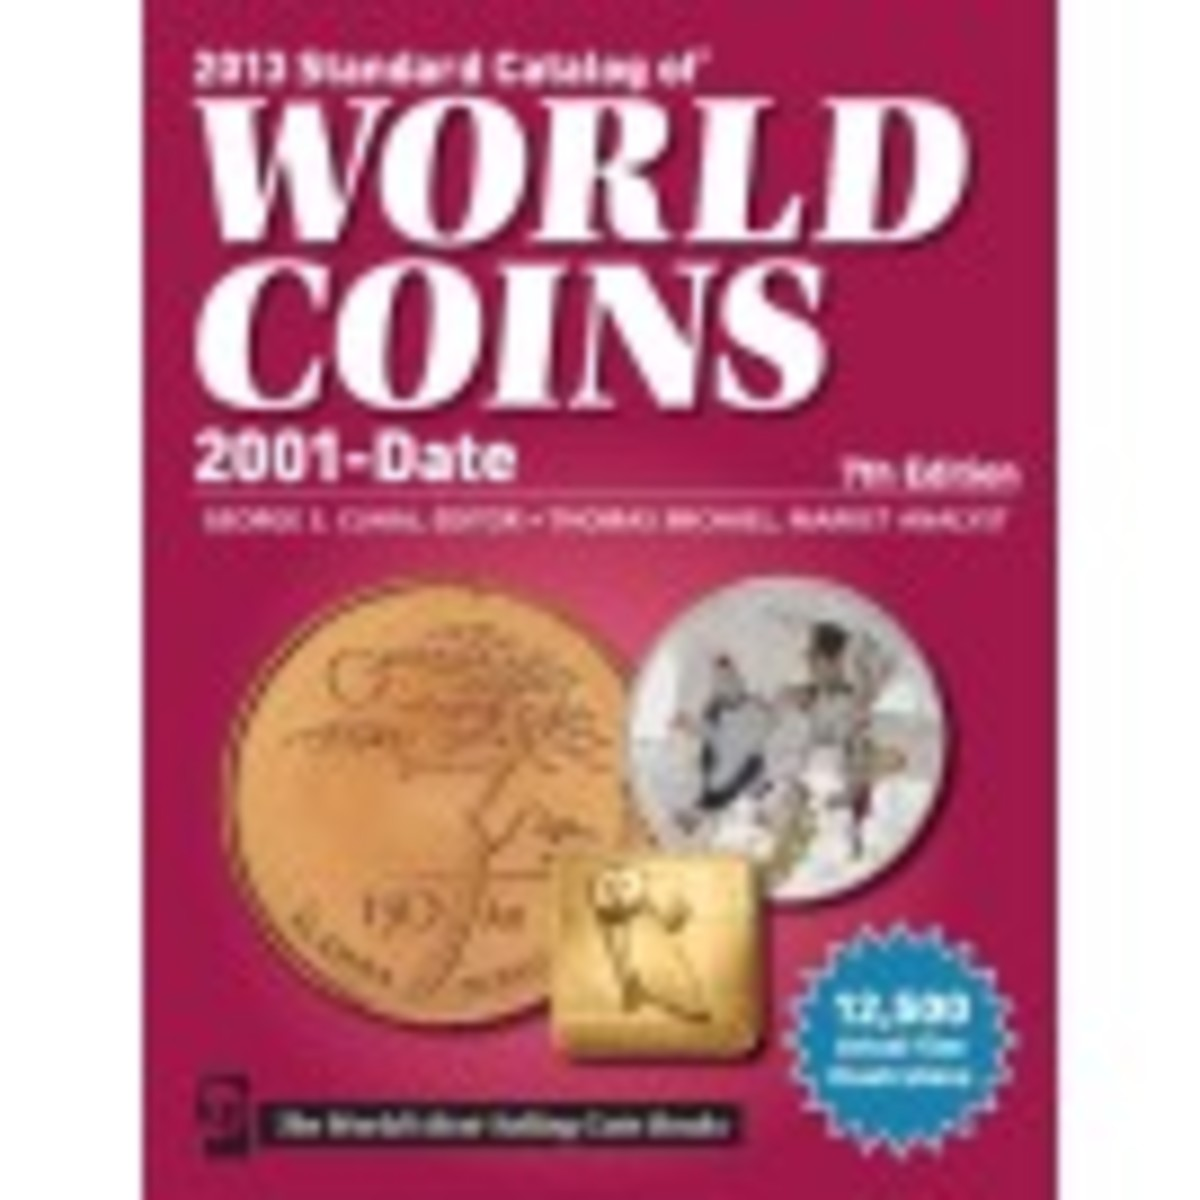 2013 Standard Catalog of World Coins 2001 to Date